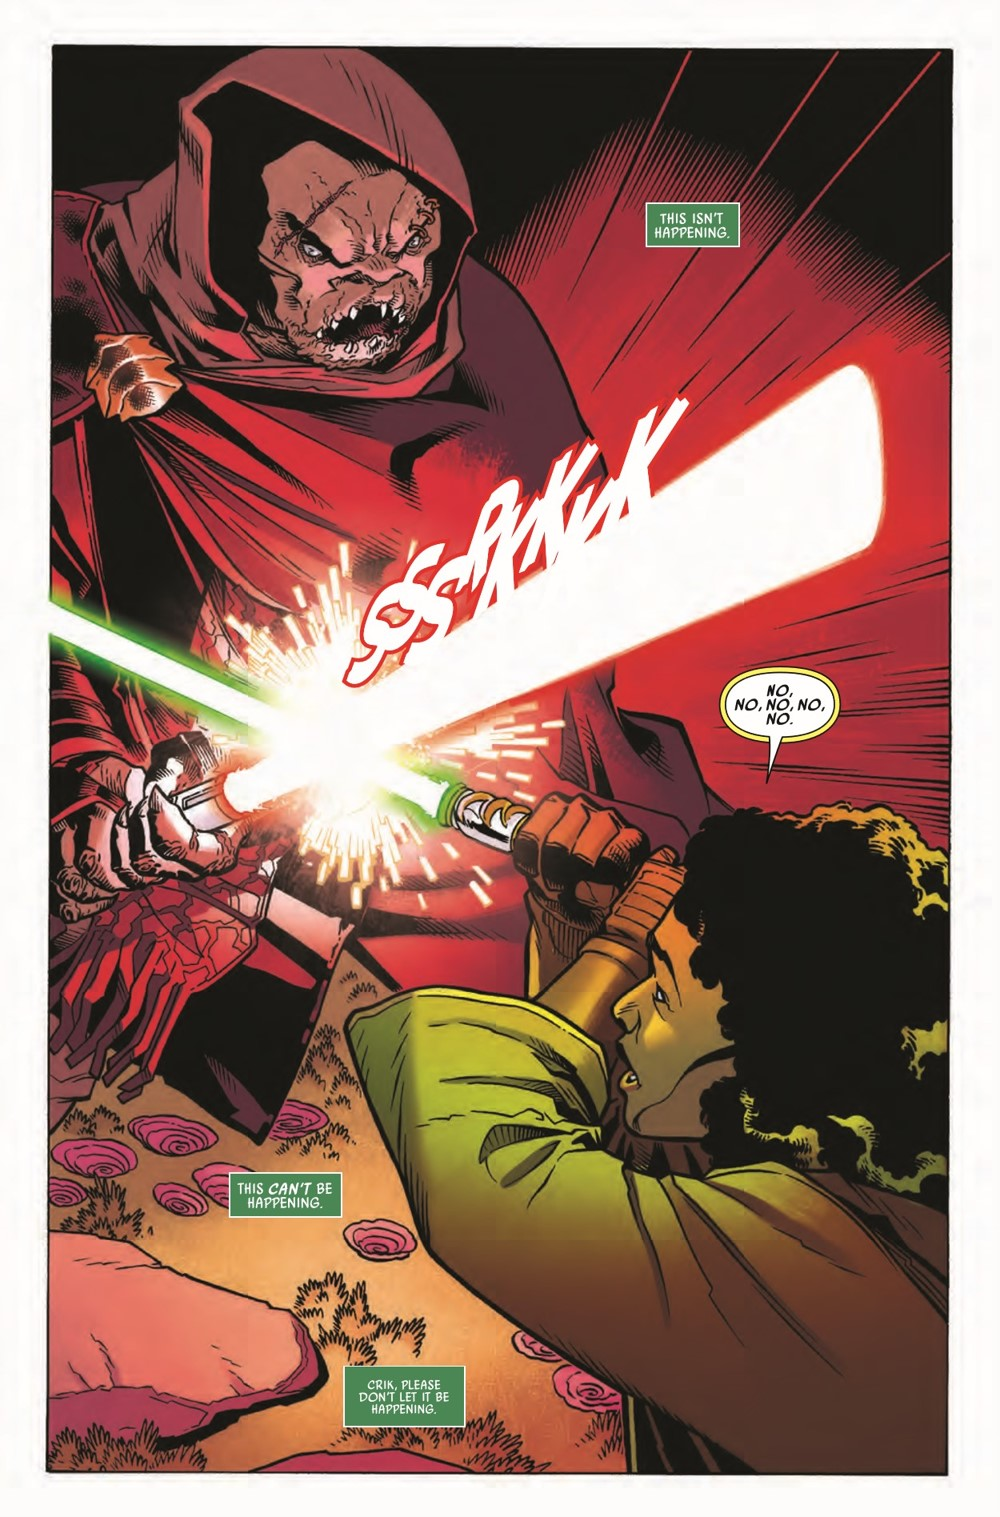 STWHIGHREP2020007_Preview-6 ComicList Previews: STAR WARS THE HIGH REPUBLIC #7